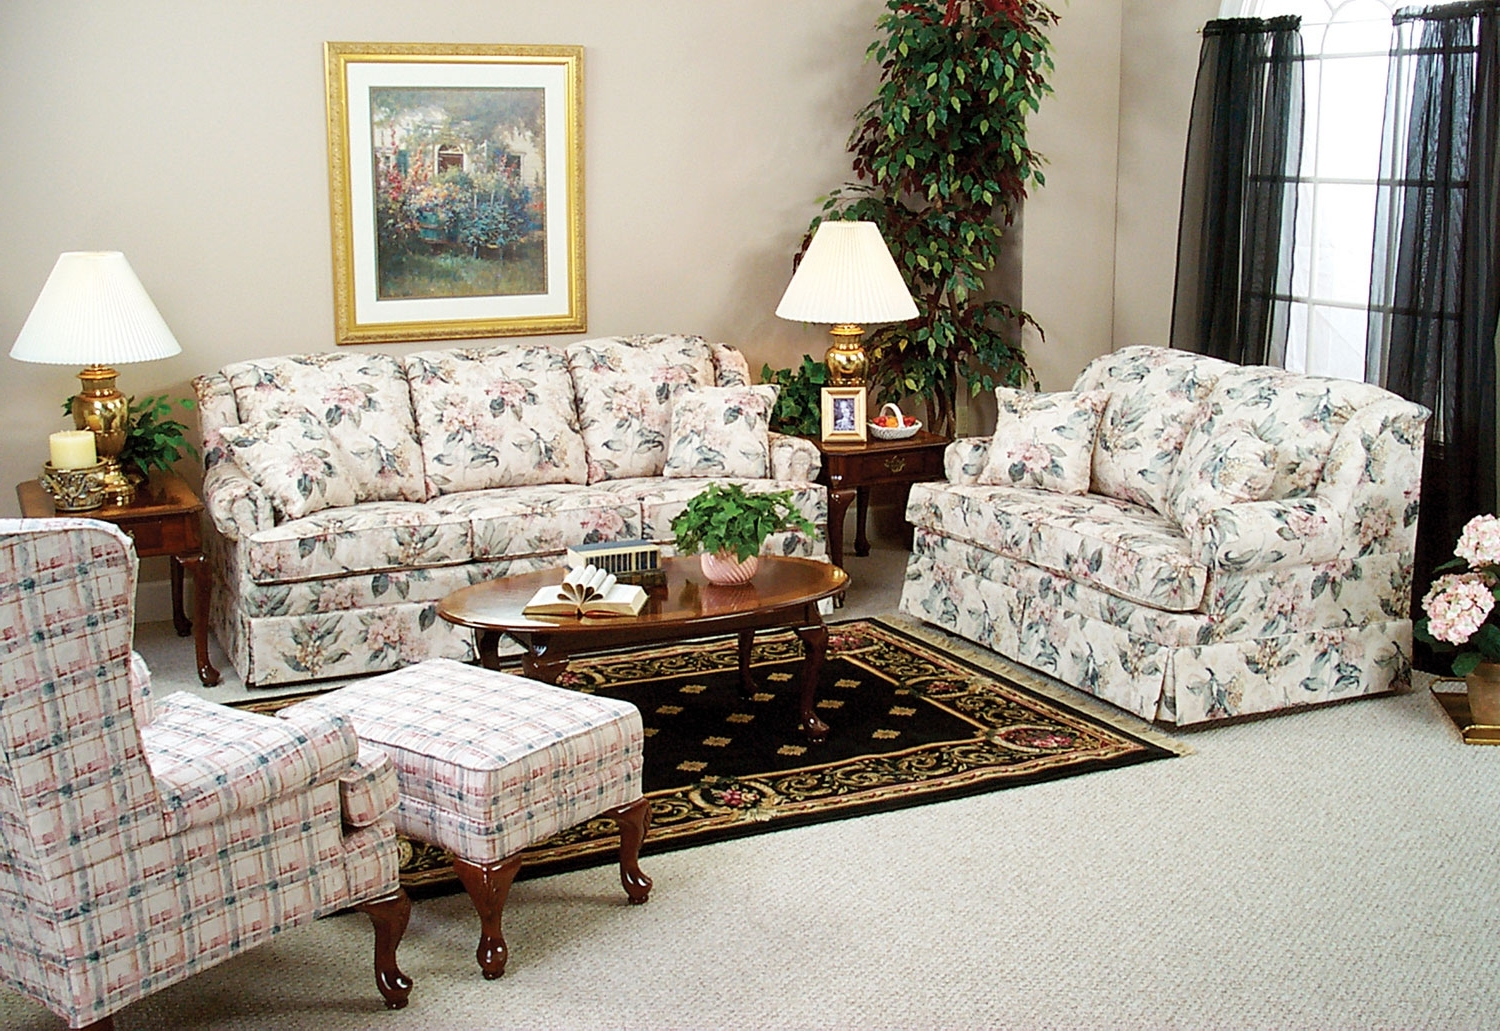 Widely Used Sofia Queen Sleeper Sofa – Floral (View 11 of 15)